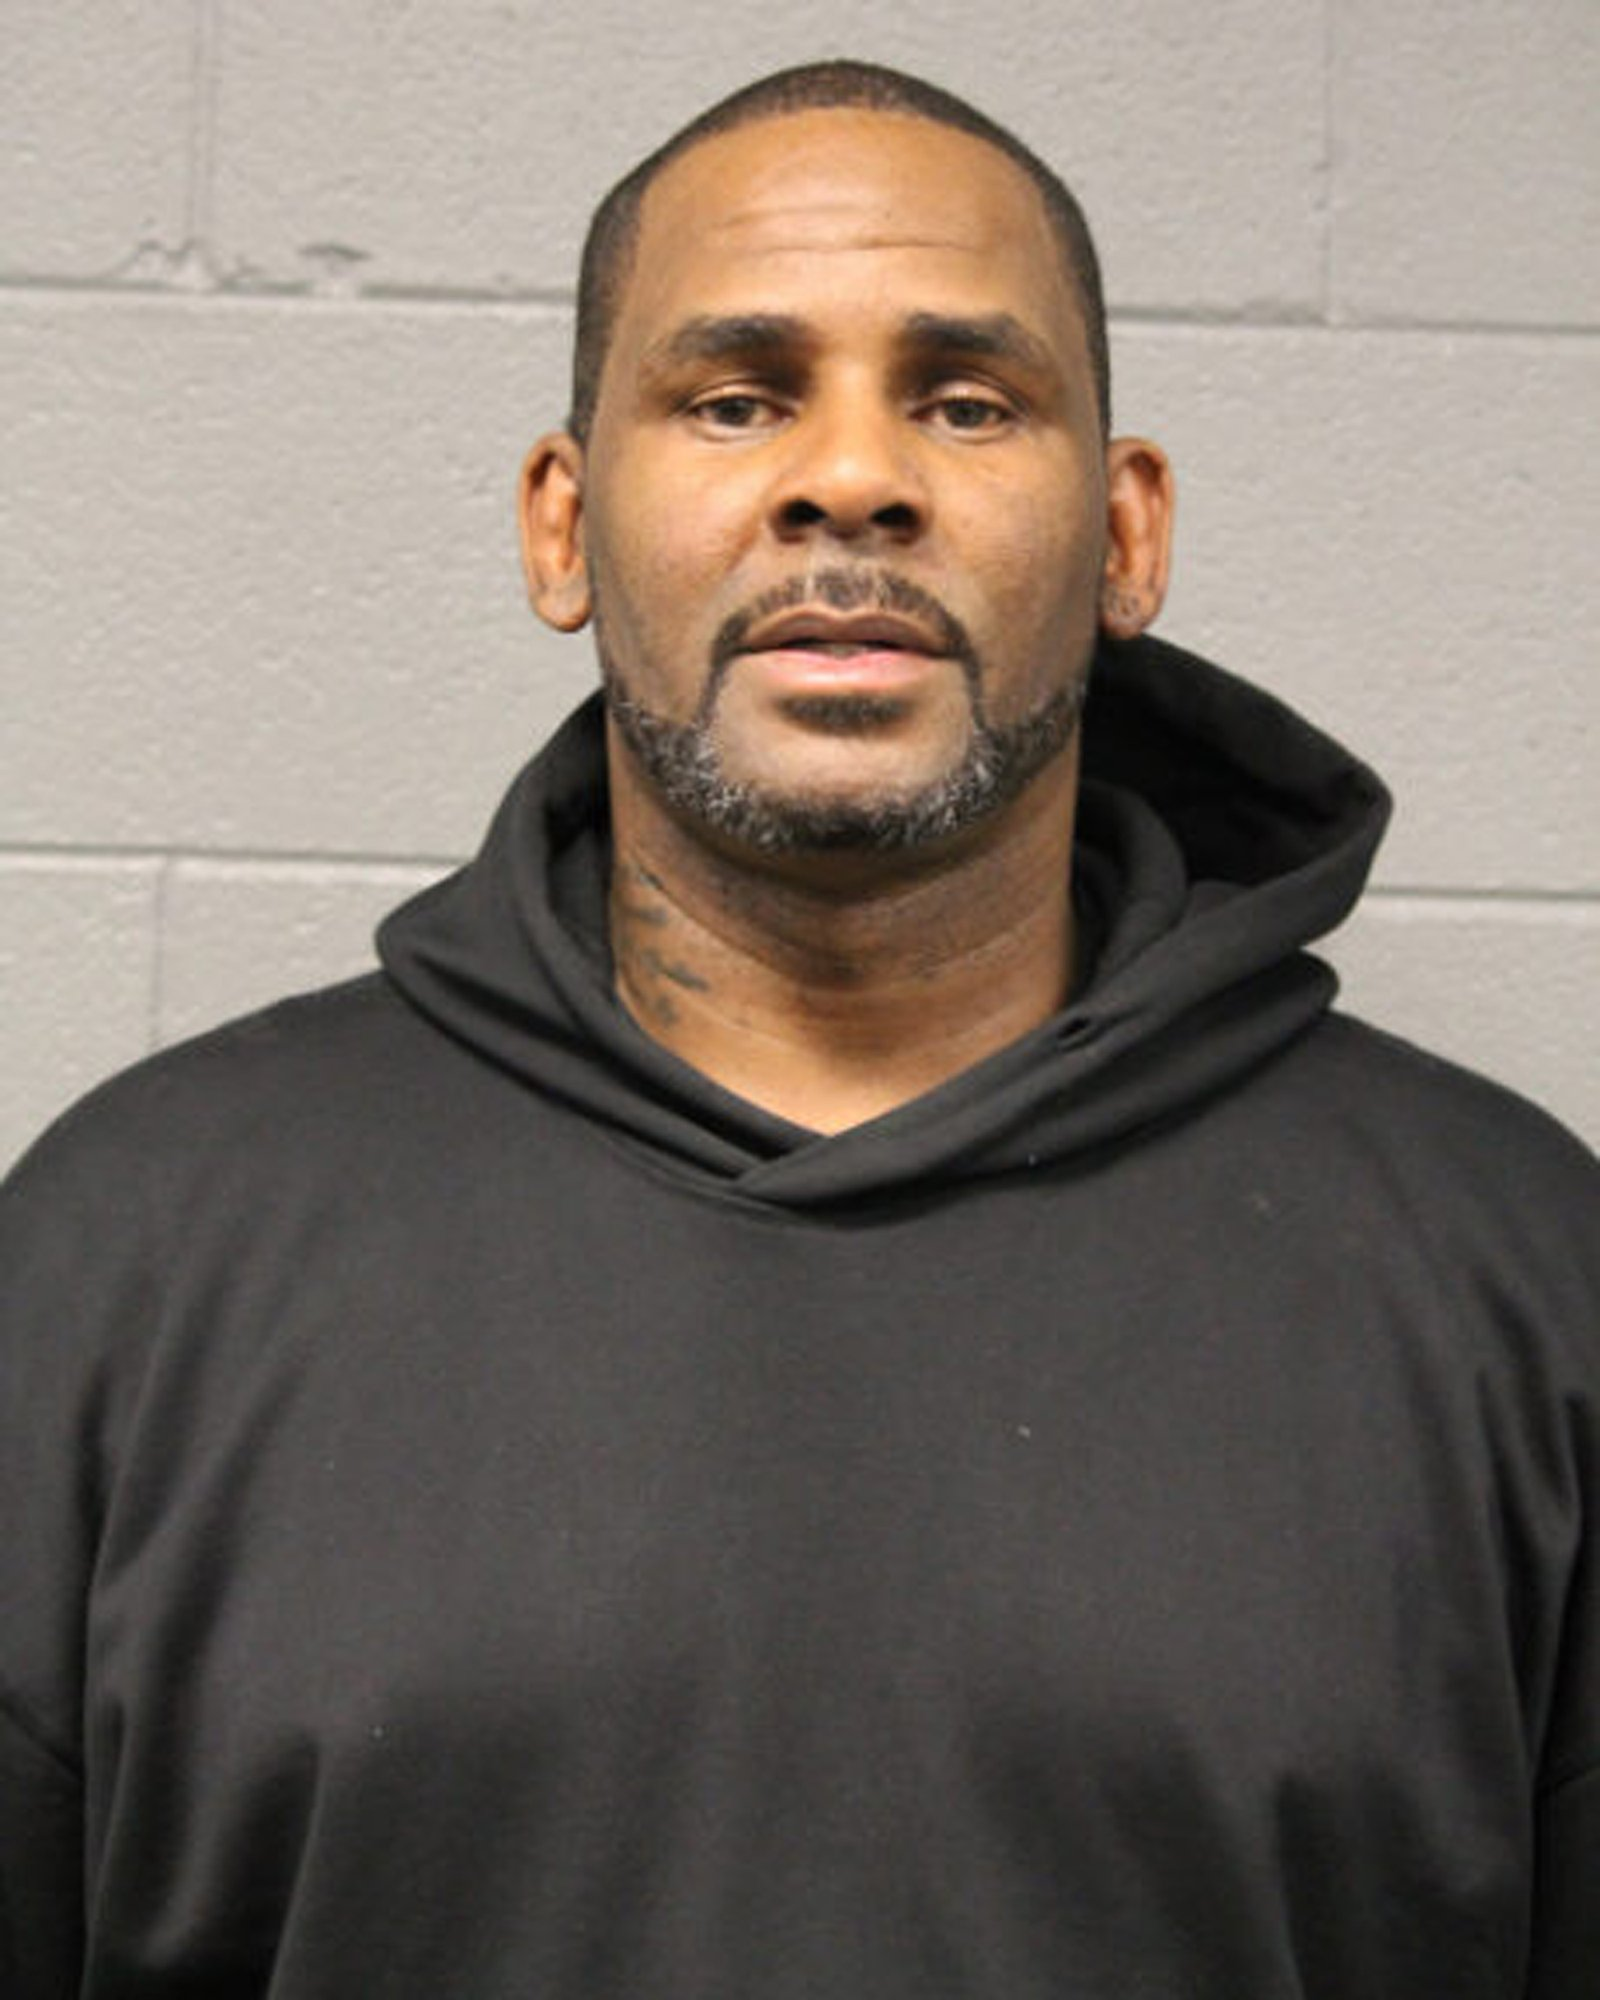 R&B singer R. Kelly is freed on bail in Chicago